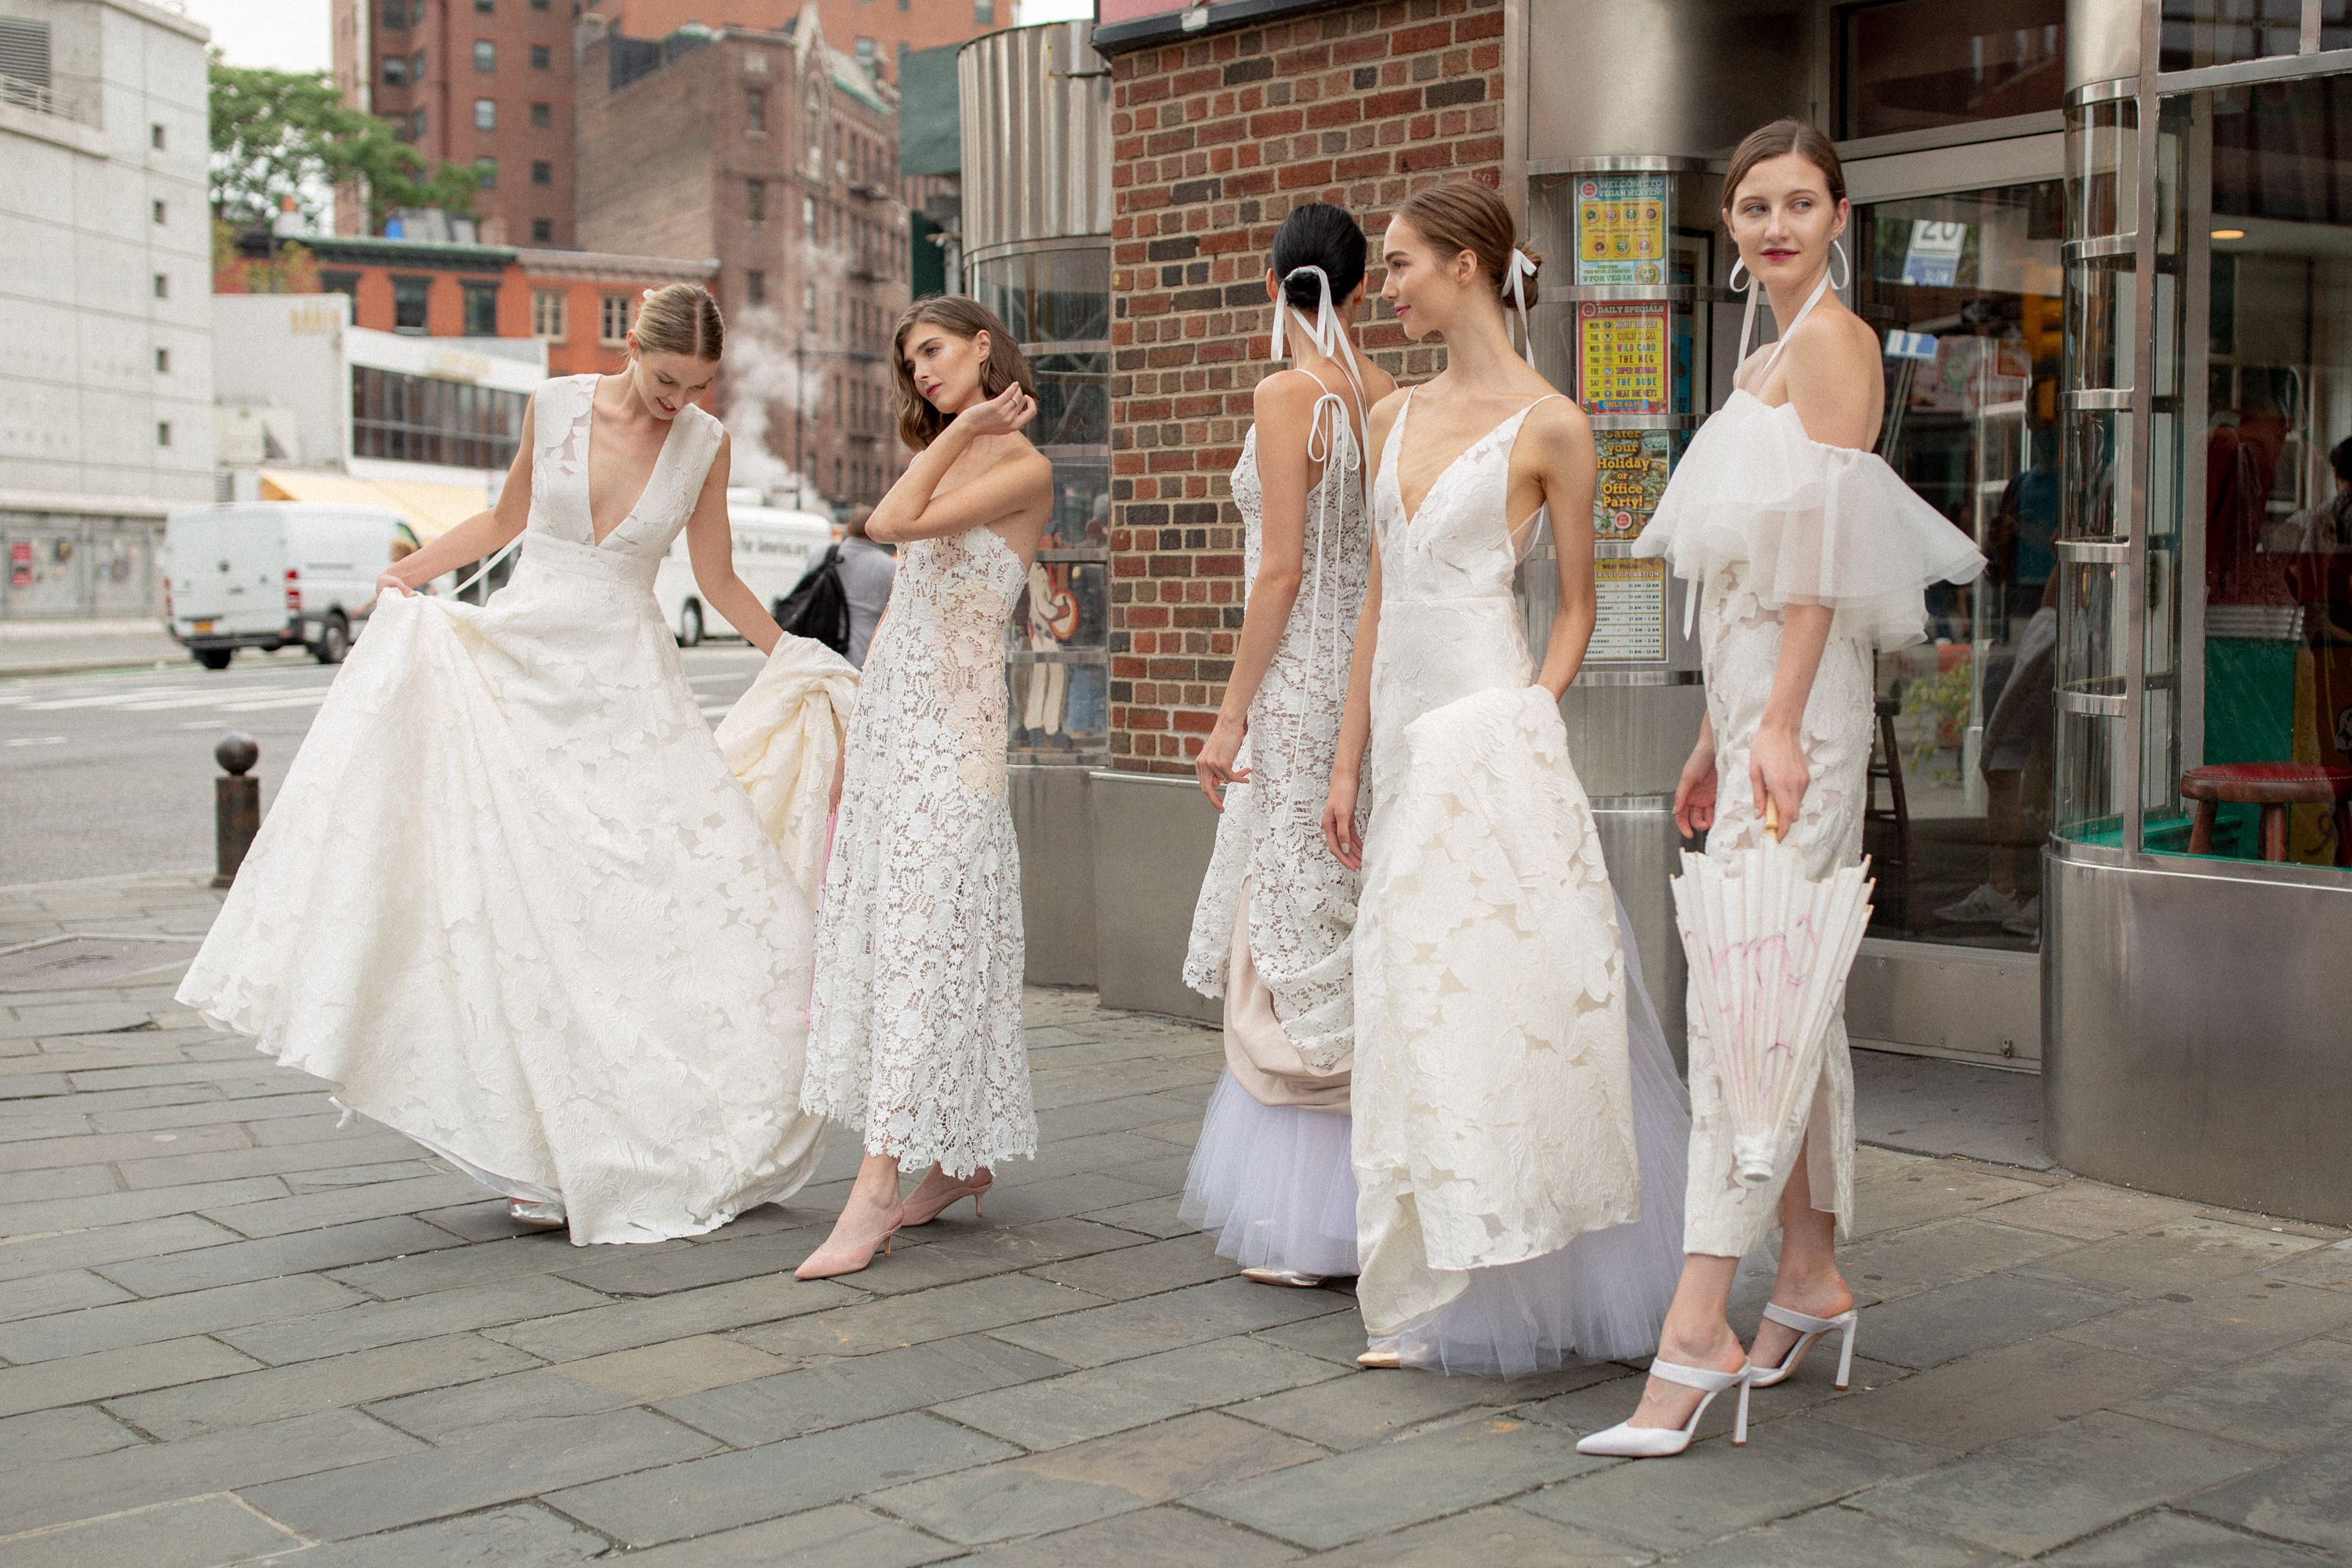 d0279eff73ec2 11 Fall 2019 Wedding Dress Trends You Have to See